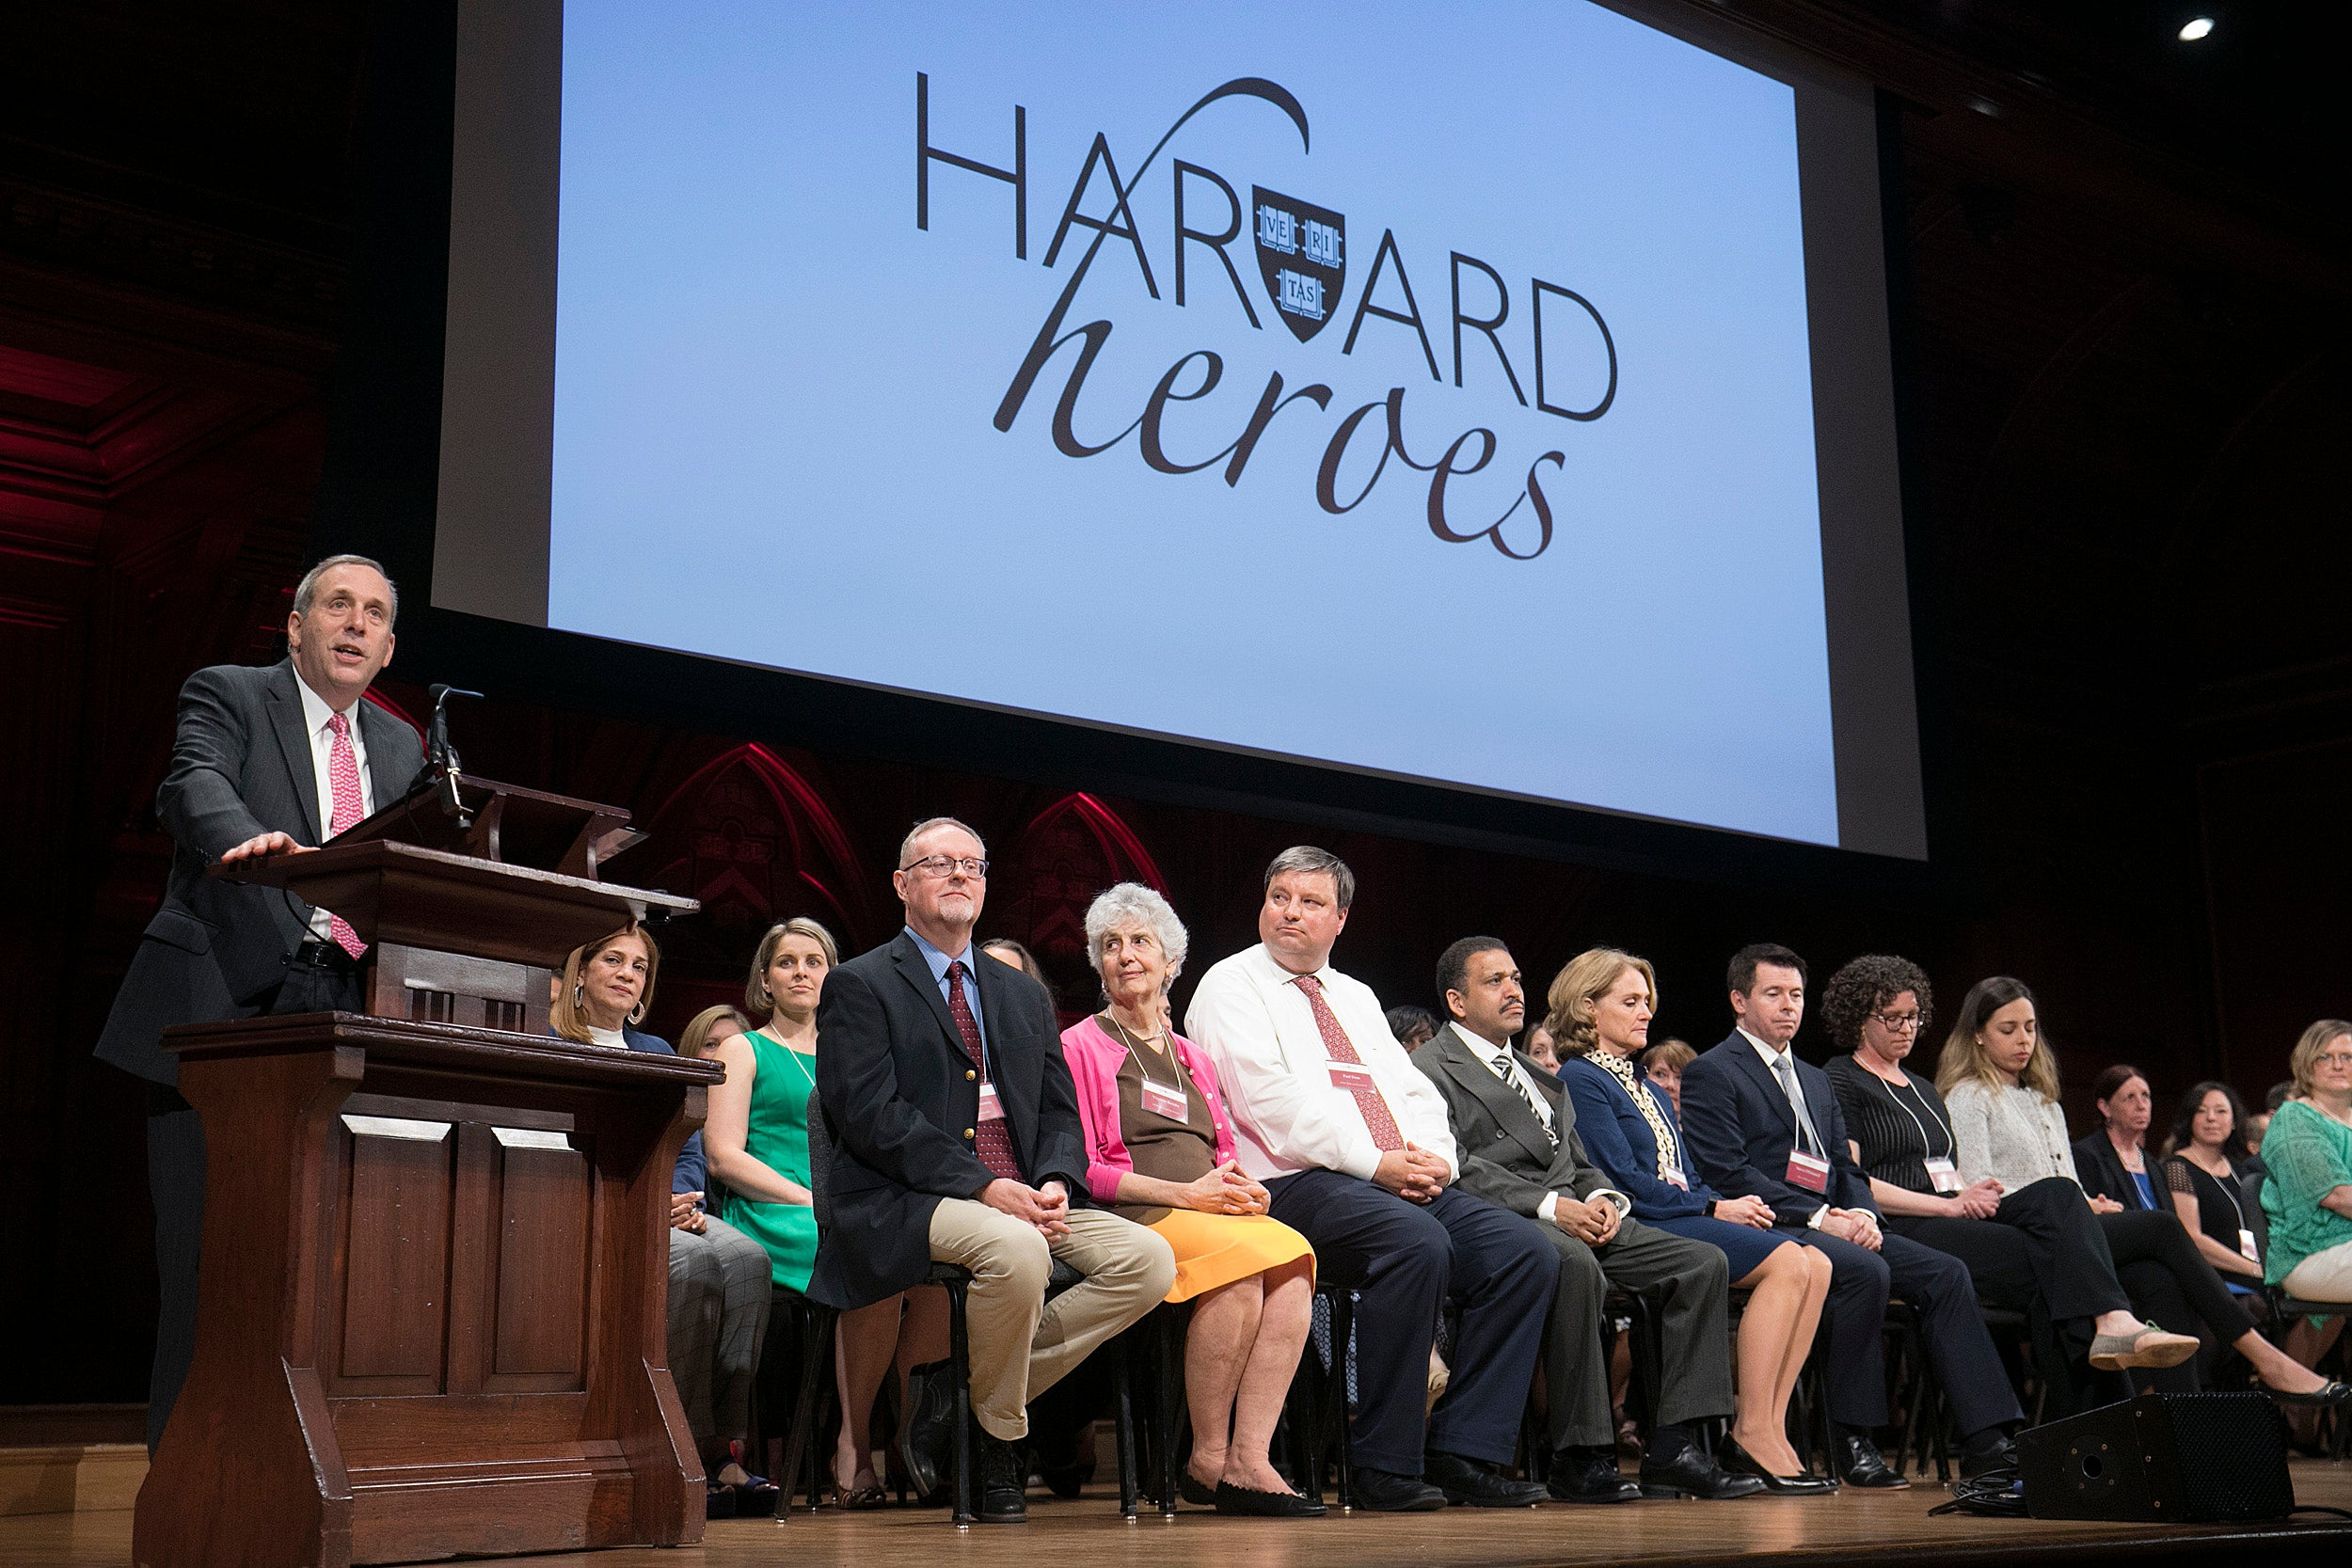 61 members of faculty and staff celebrated as Harvard Heroes